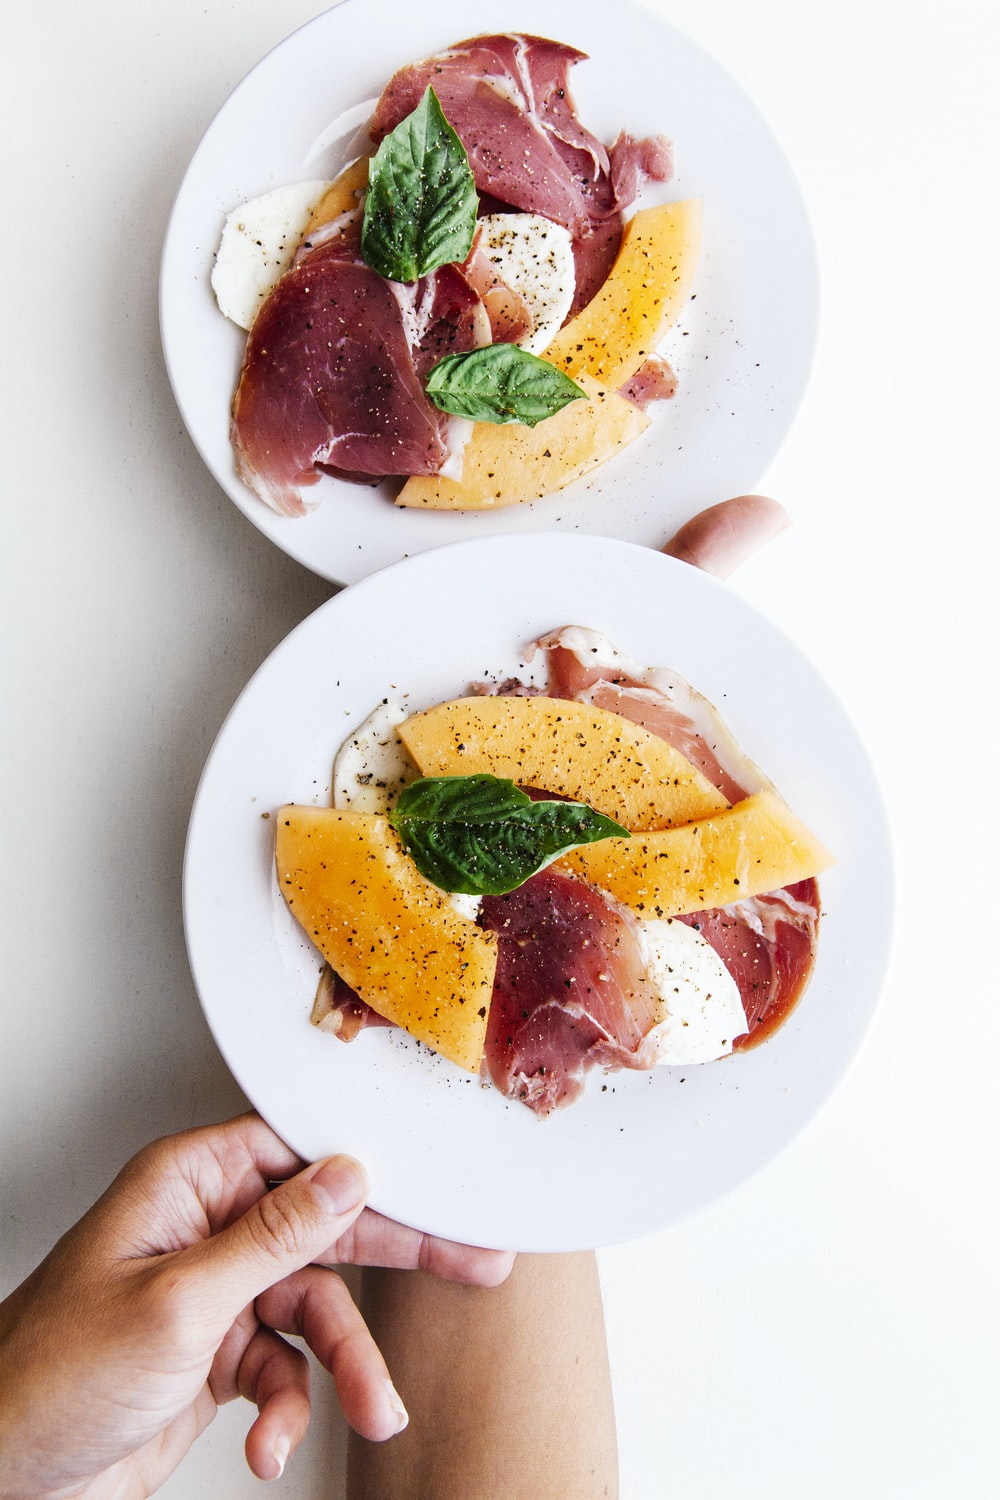 two raw meats on white ceramic plates